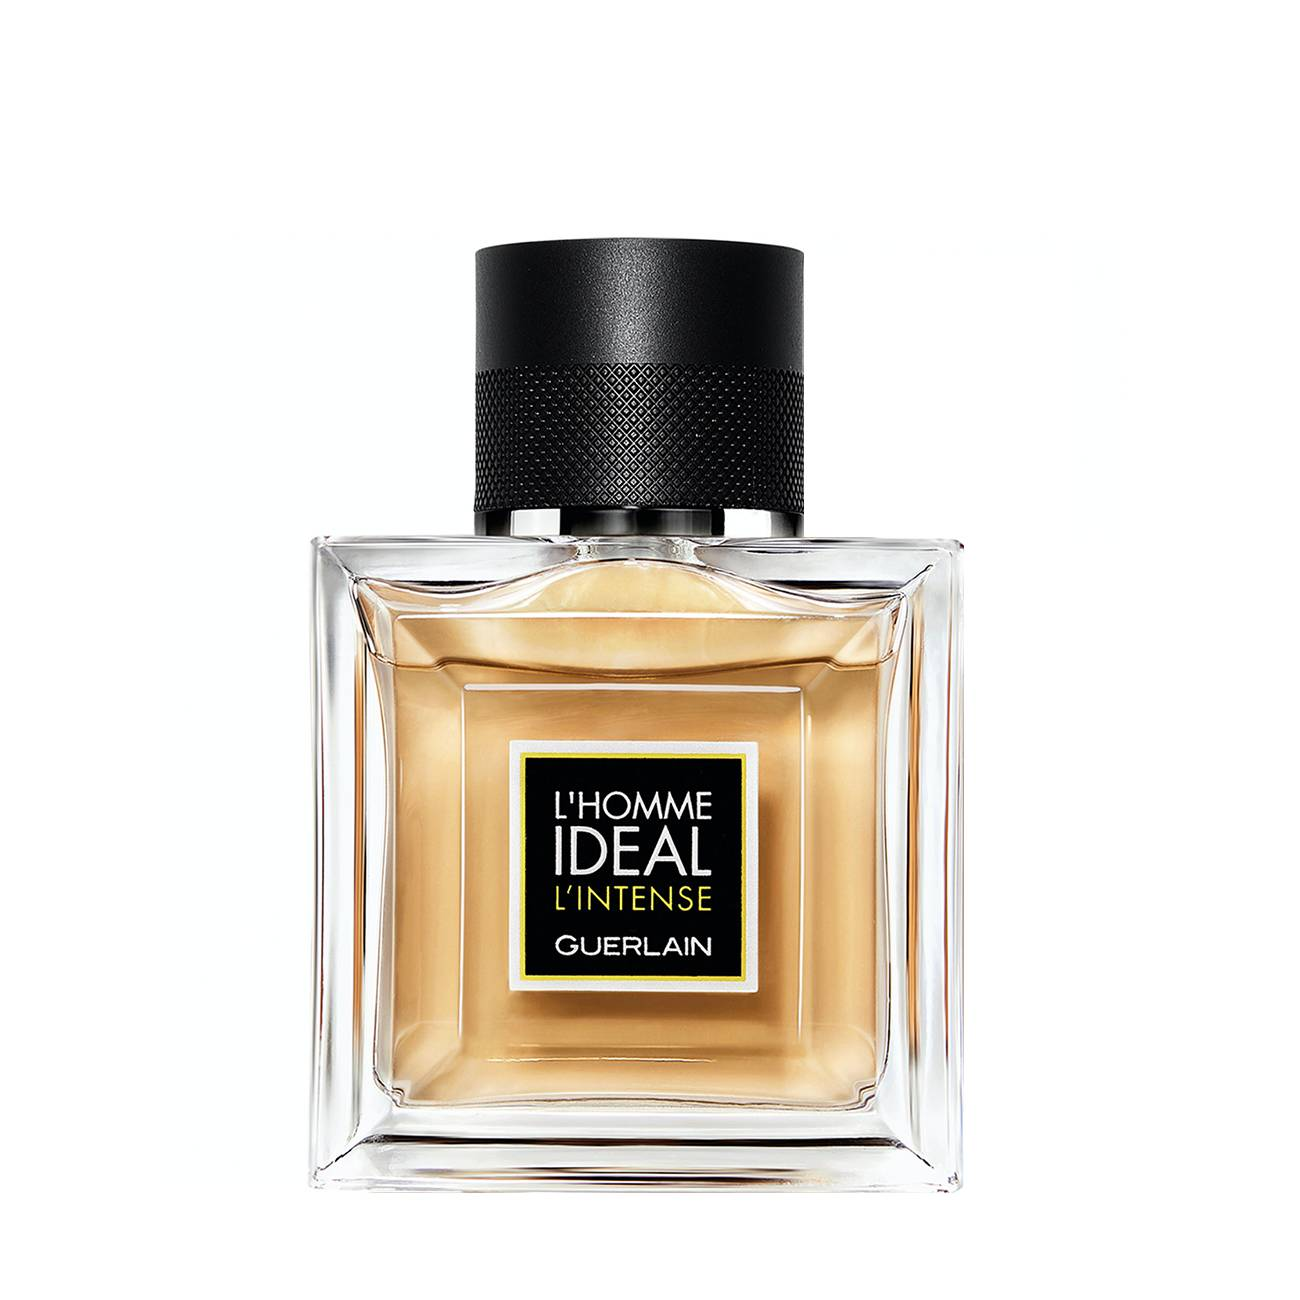 L'homme Ideal L'intense 100ml